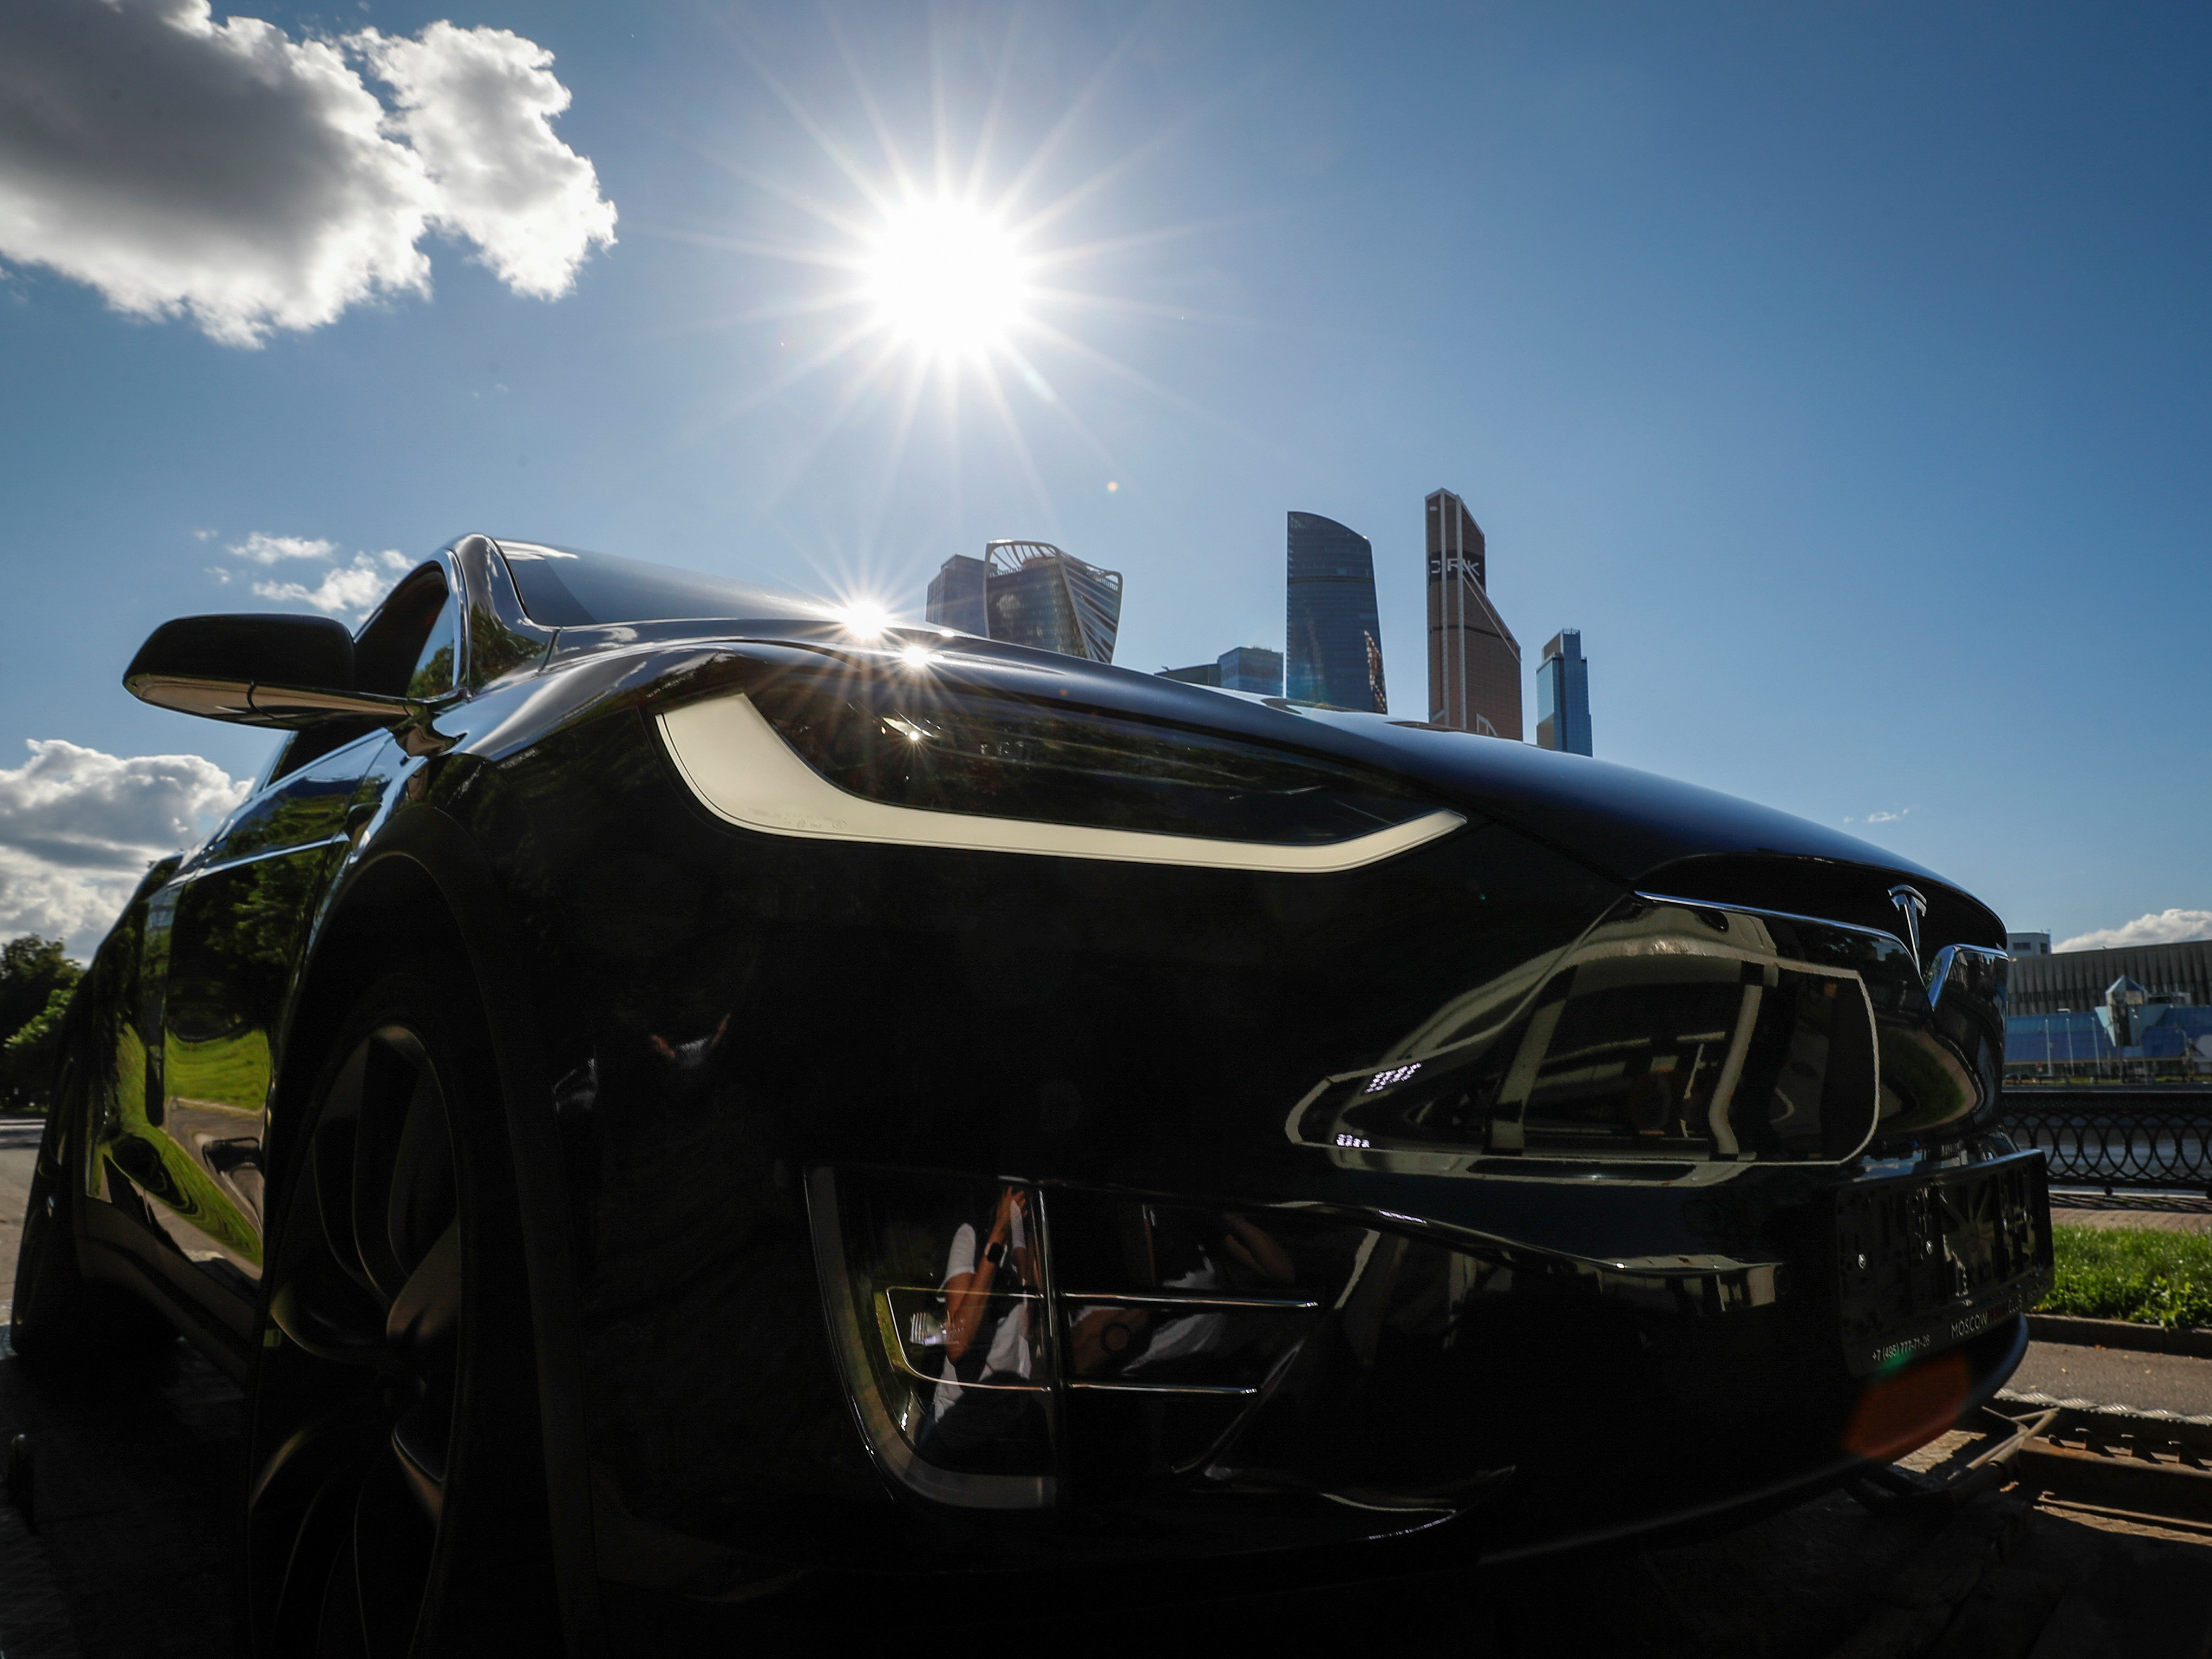 A Tesla Model X electric vehicle is shown in this picture illustration taken in Moscow, Russia July 23, 2020. Picture taken July 23, 2020. REUTERS/Evgenia Novozhenina - RC2D6I9SFJ76